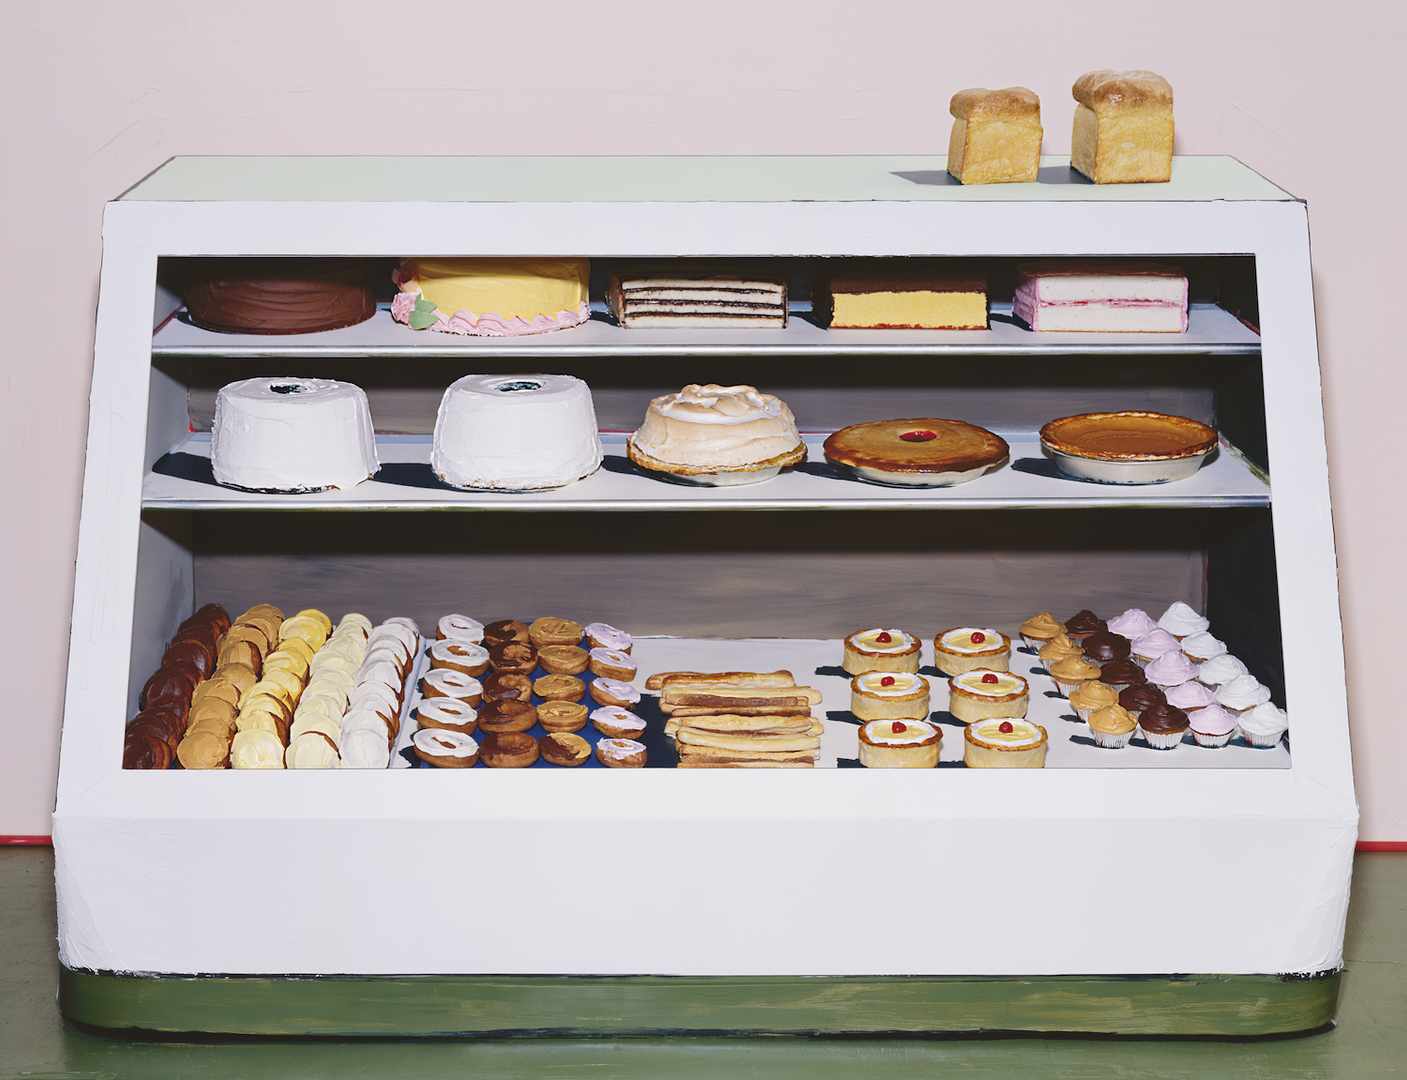 PERSONAL_2004_Thiebauds,Bakery Counter_s